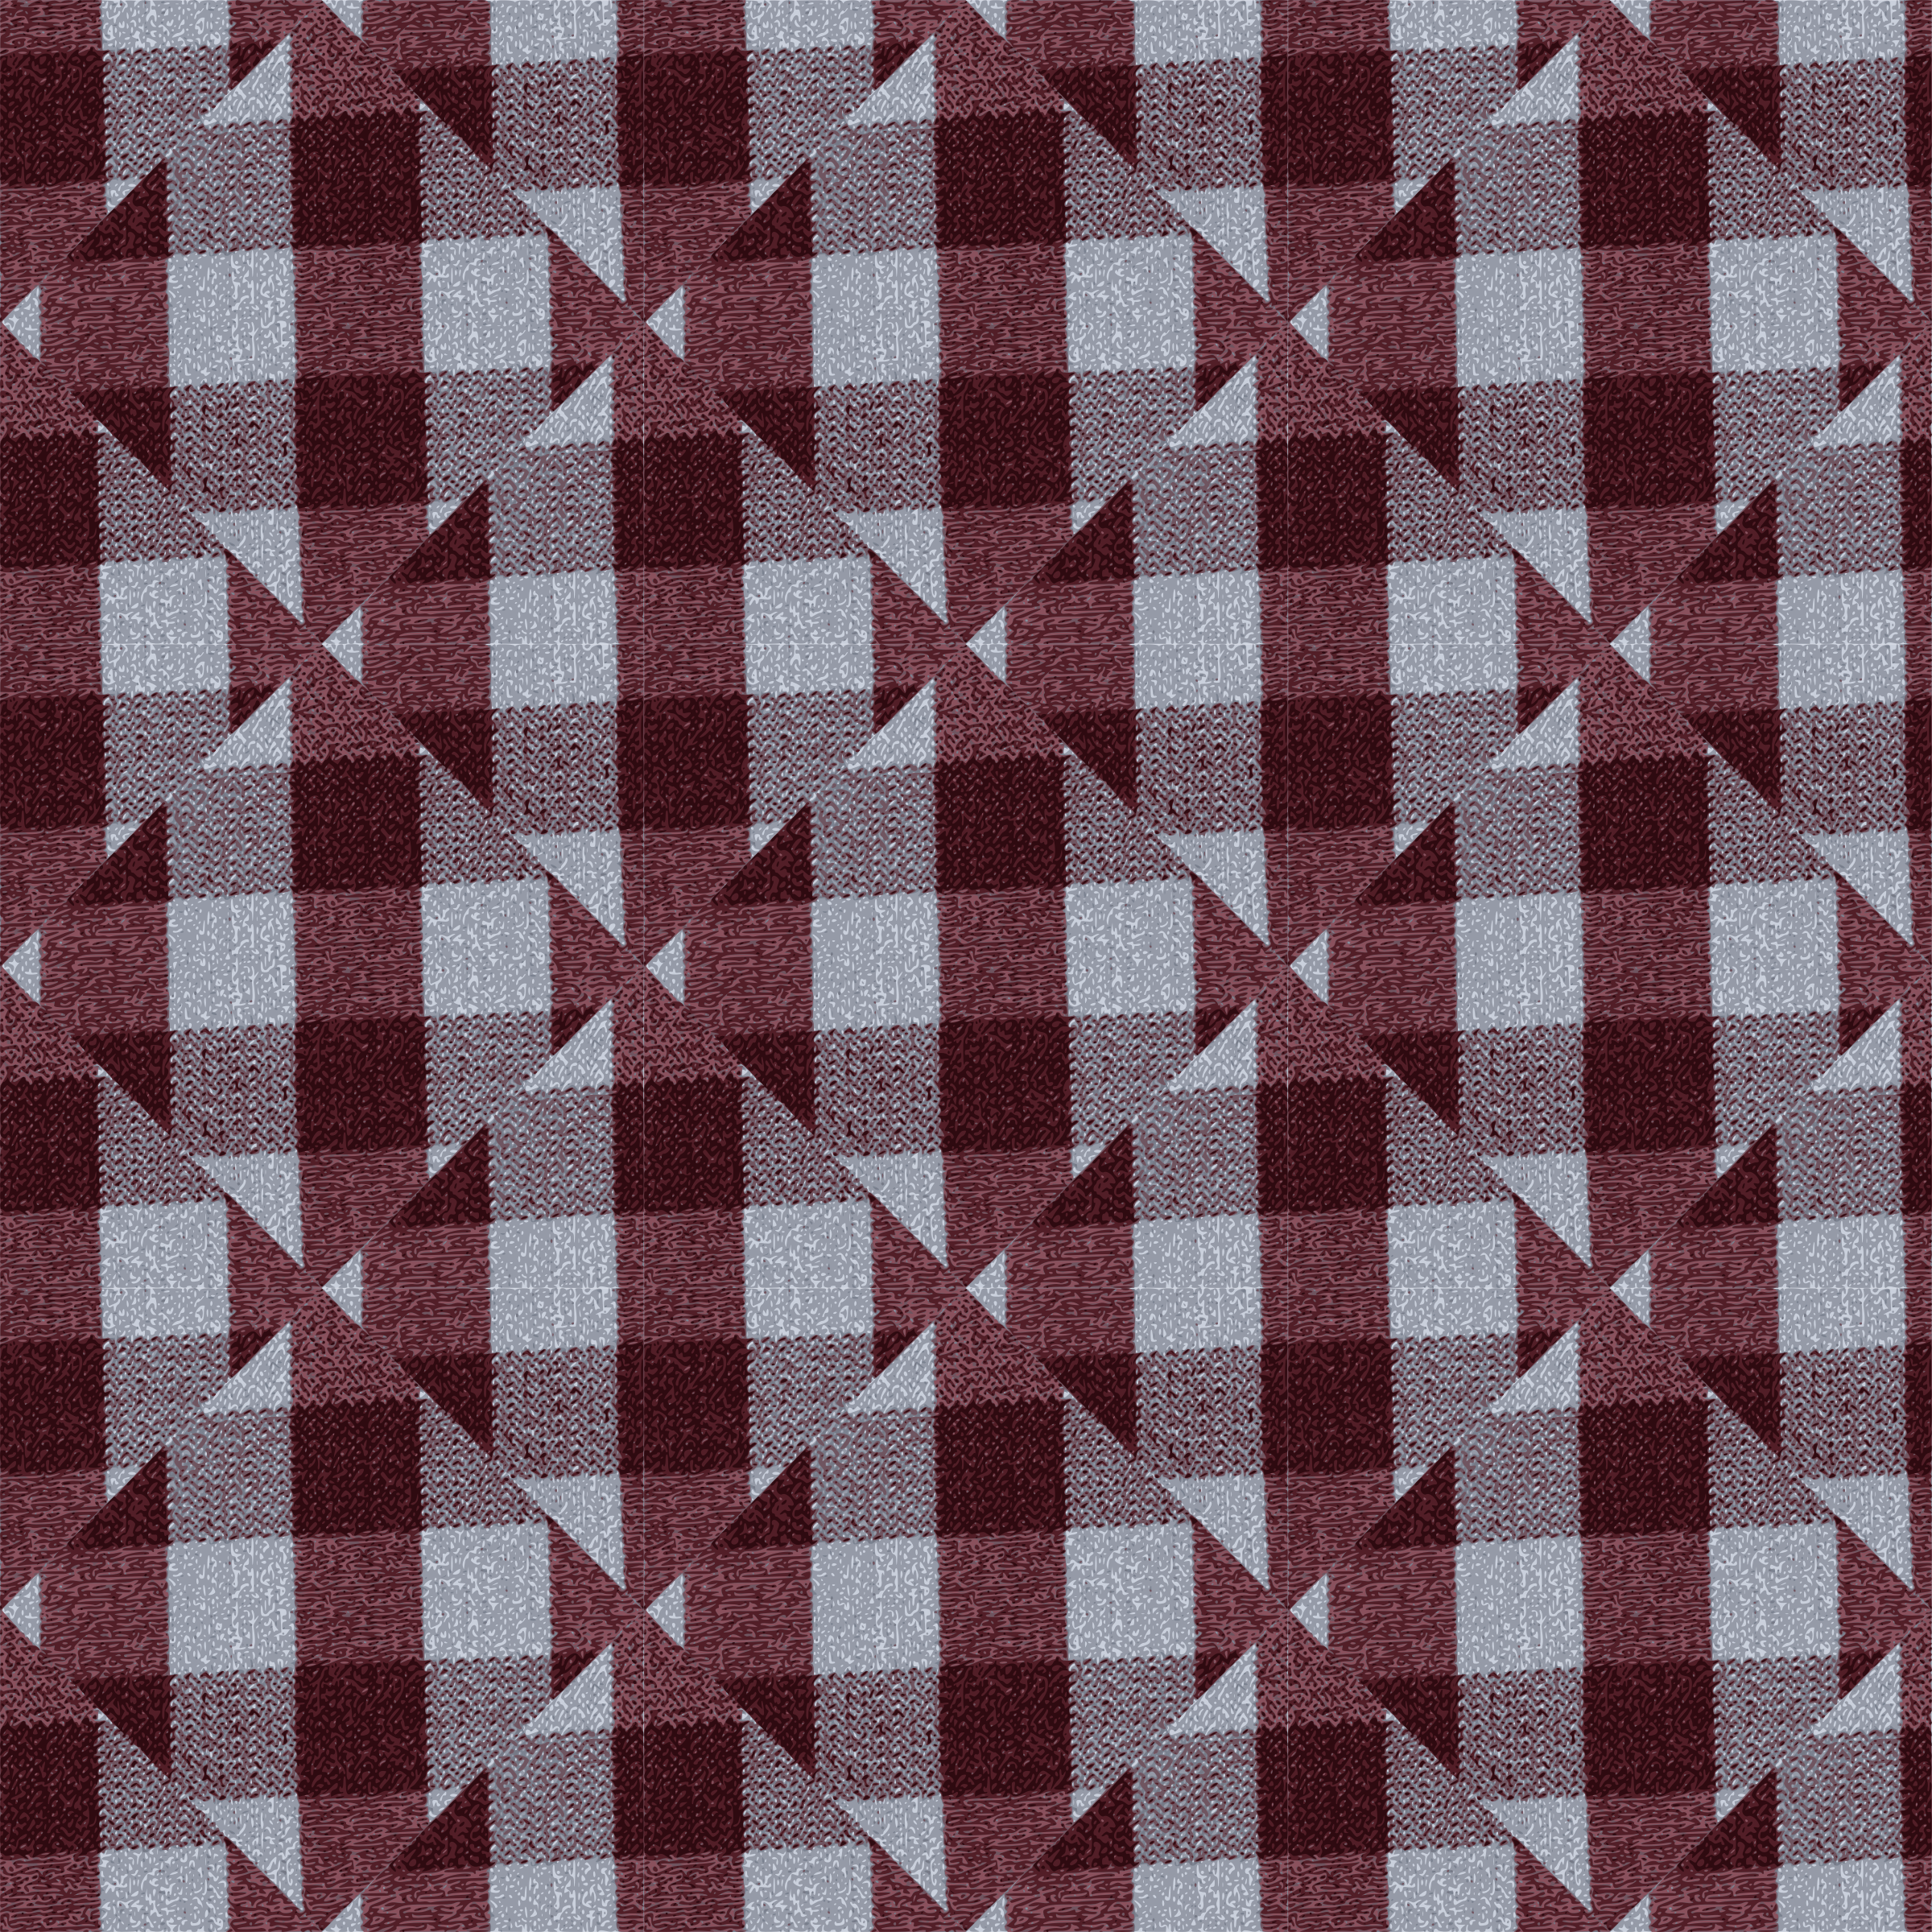 Fabric-seamless pattern by yamachem